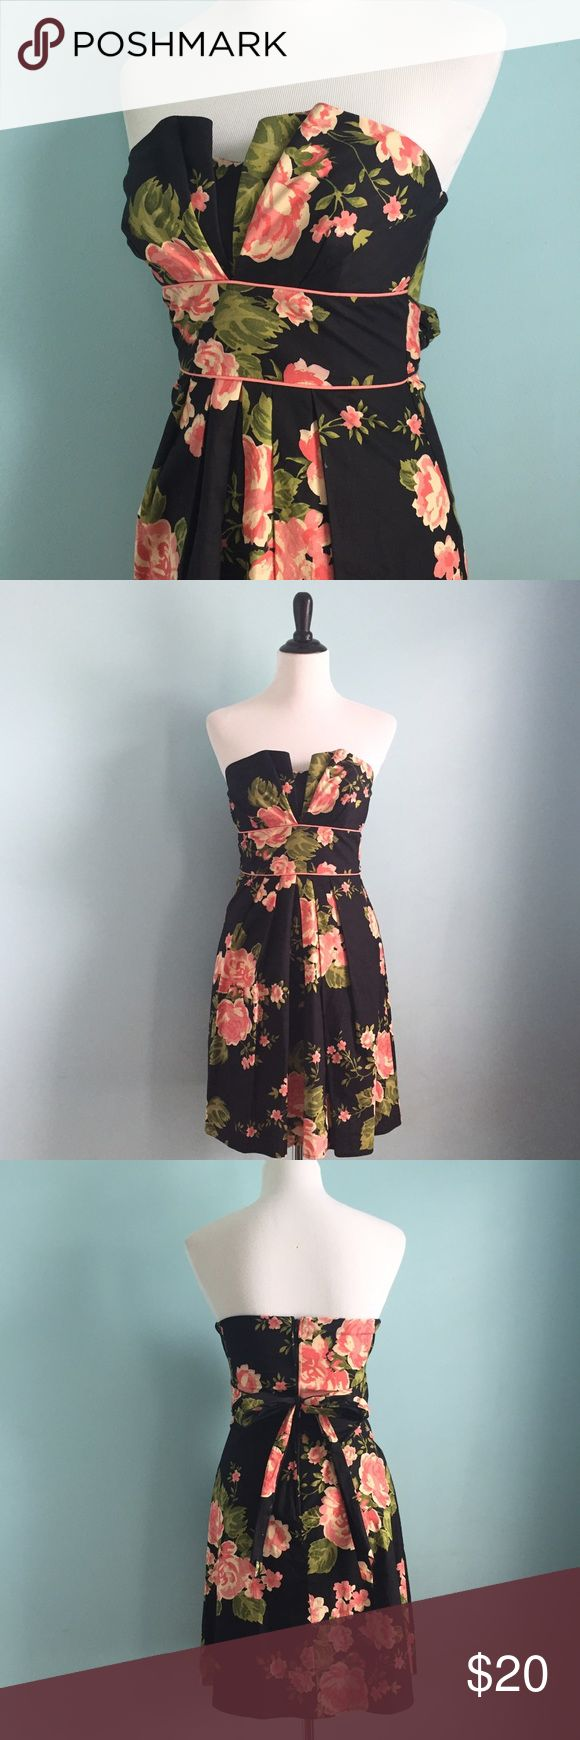 Black & Peach Floral Dress Beautiful black dress with peachy pink colored flowers. Strapless Crumb catcher neckline with tie back. Size 4 by B. Smart. Dresses Strapless